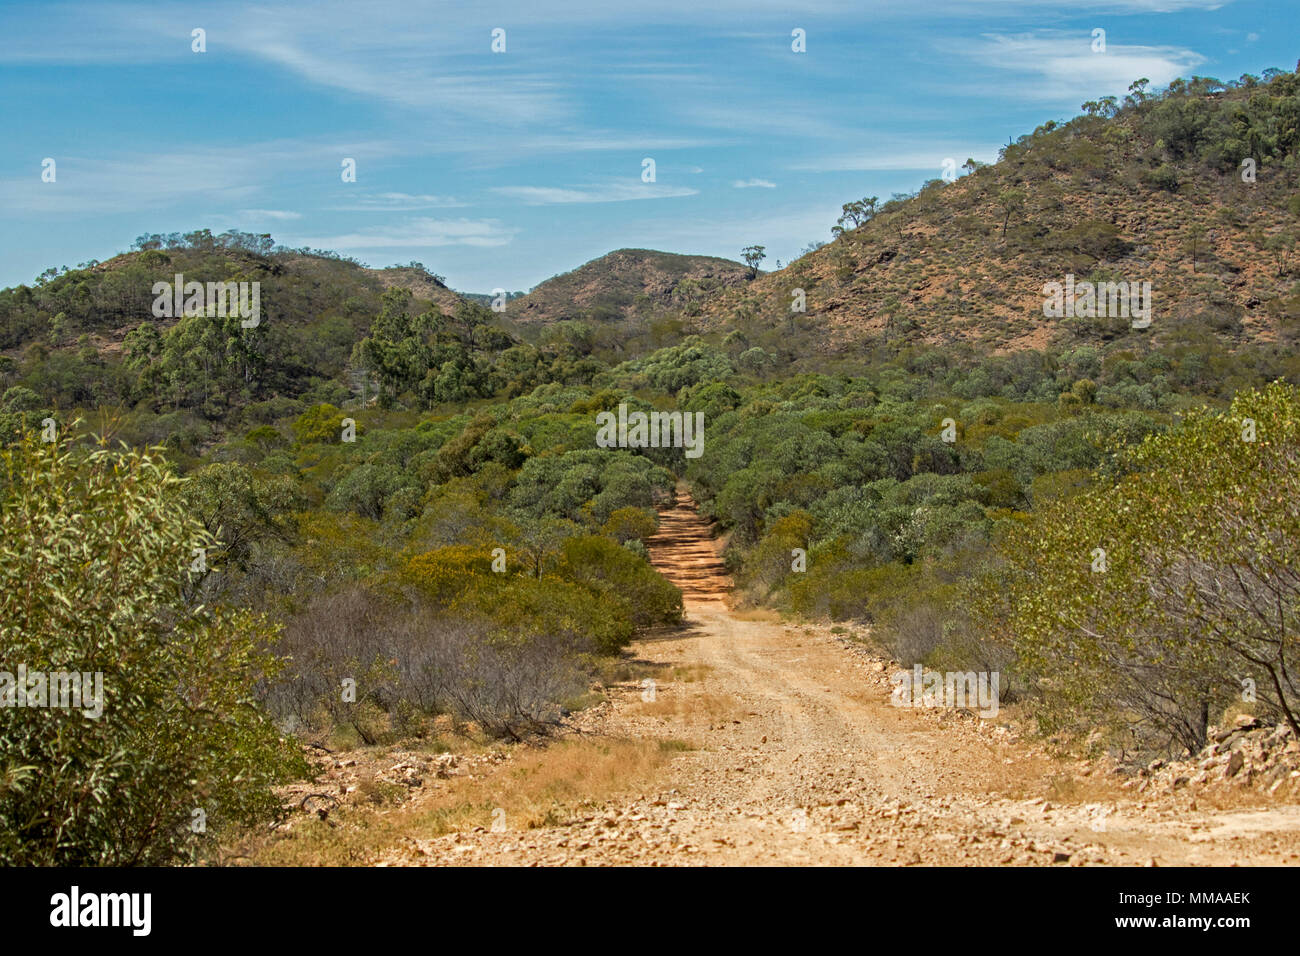 Landscape with woodlands of eucalyptus trees severed by narrow dirt road in Minerva Hills National Park, near Springsure, Queensland Australia - Stock Image